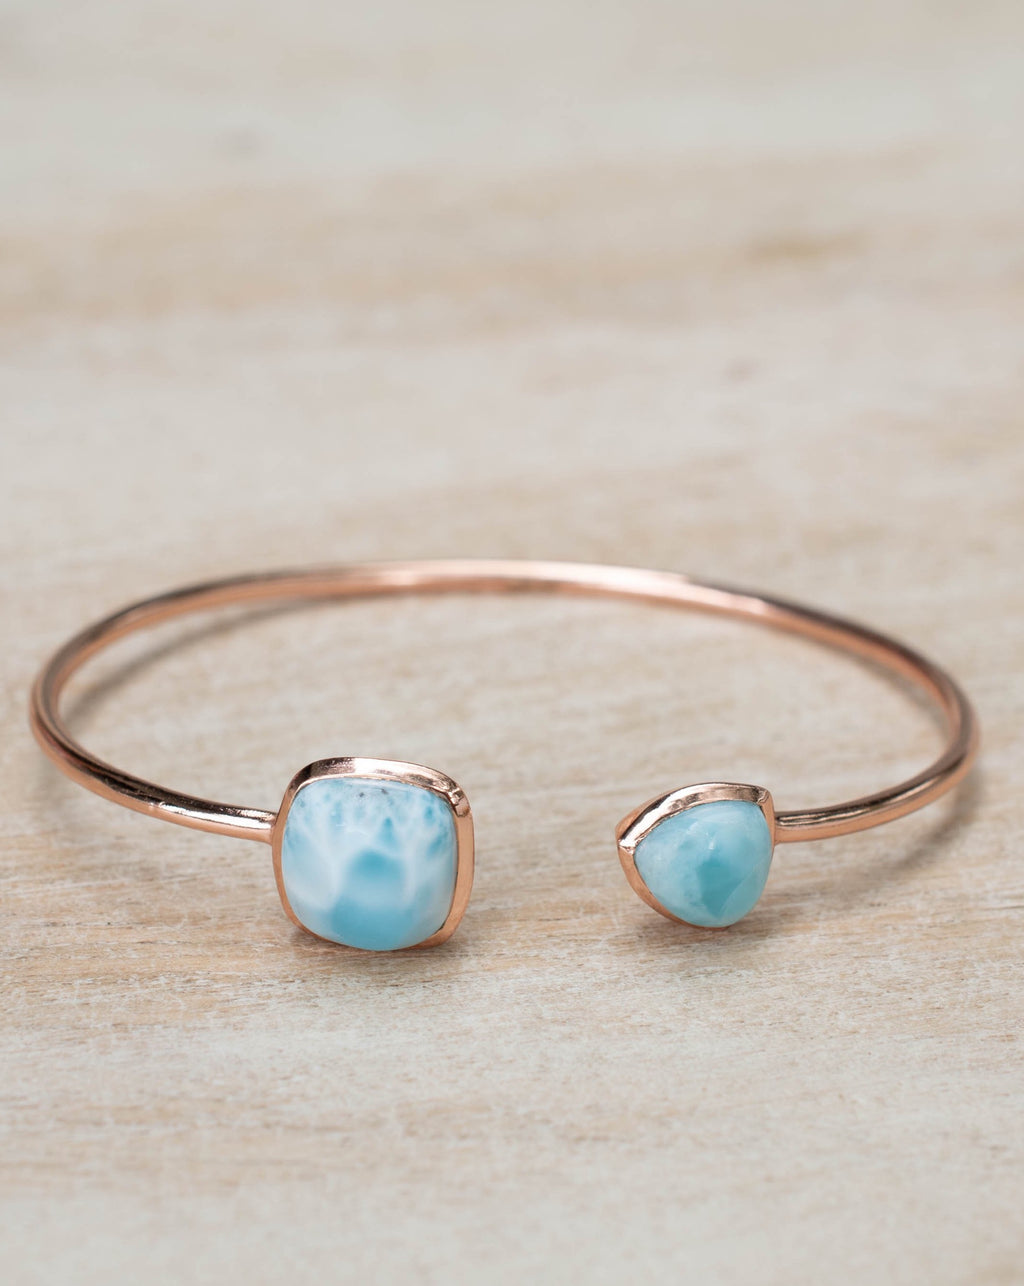 Larimar Bohemian Bangle Bracelet * Gold Plated 18k or Silver Plated or Rose Gold Plated * Gemstone * Gypsy * Hippie * Adjustable  * BJB005C